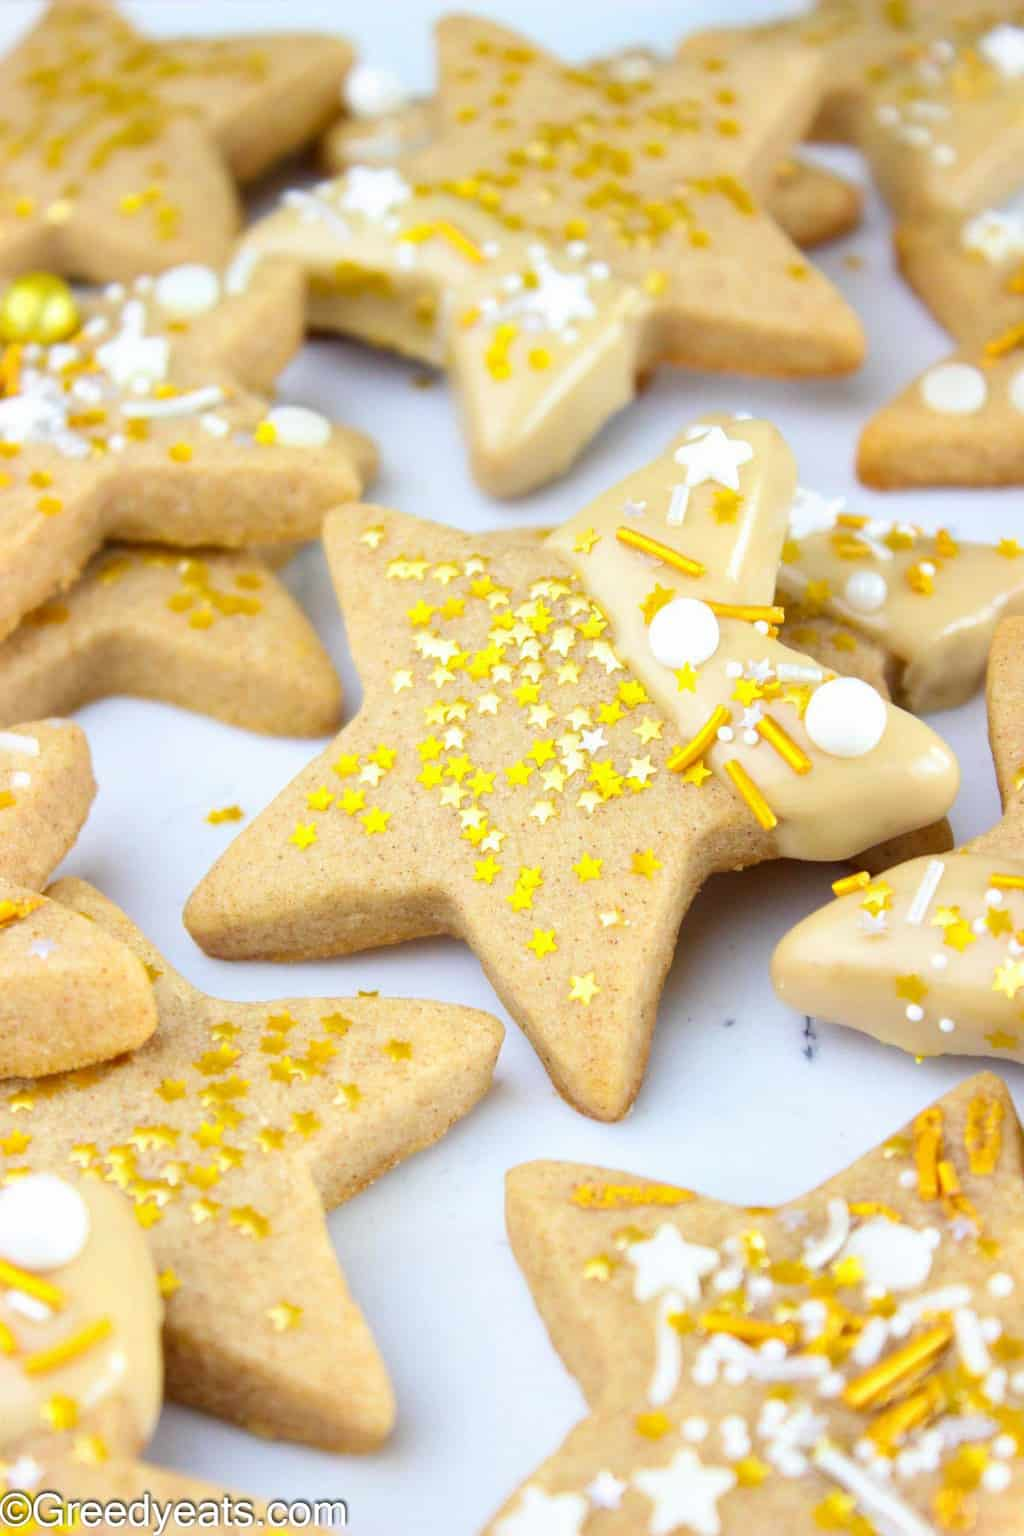 My Star Sugar Cookies are hands down the best Sugar Cookies that you will ever bake!